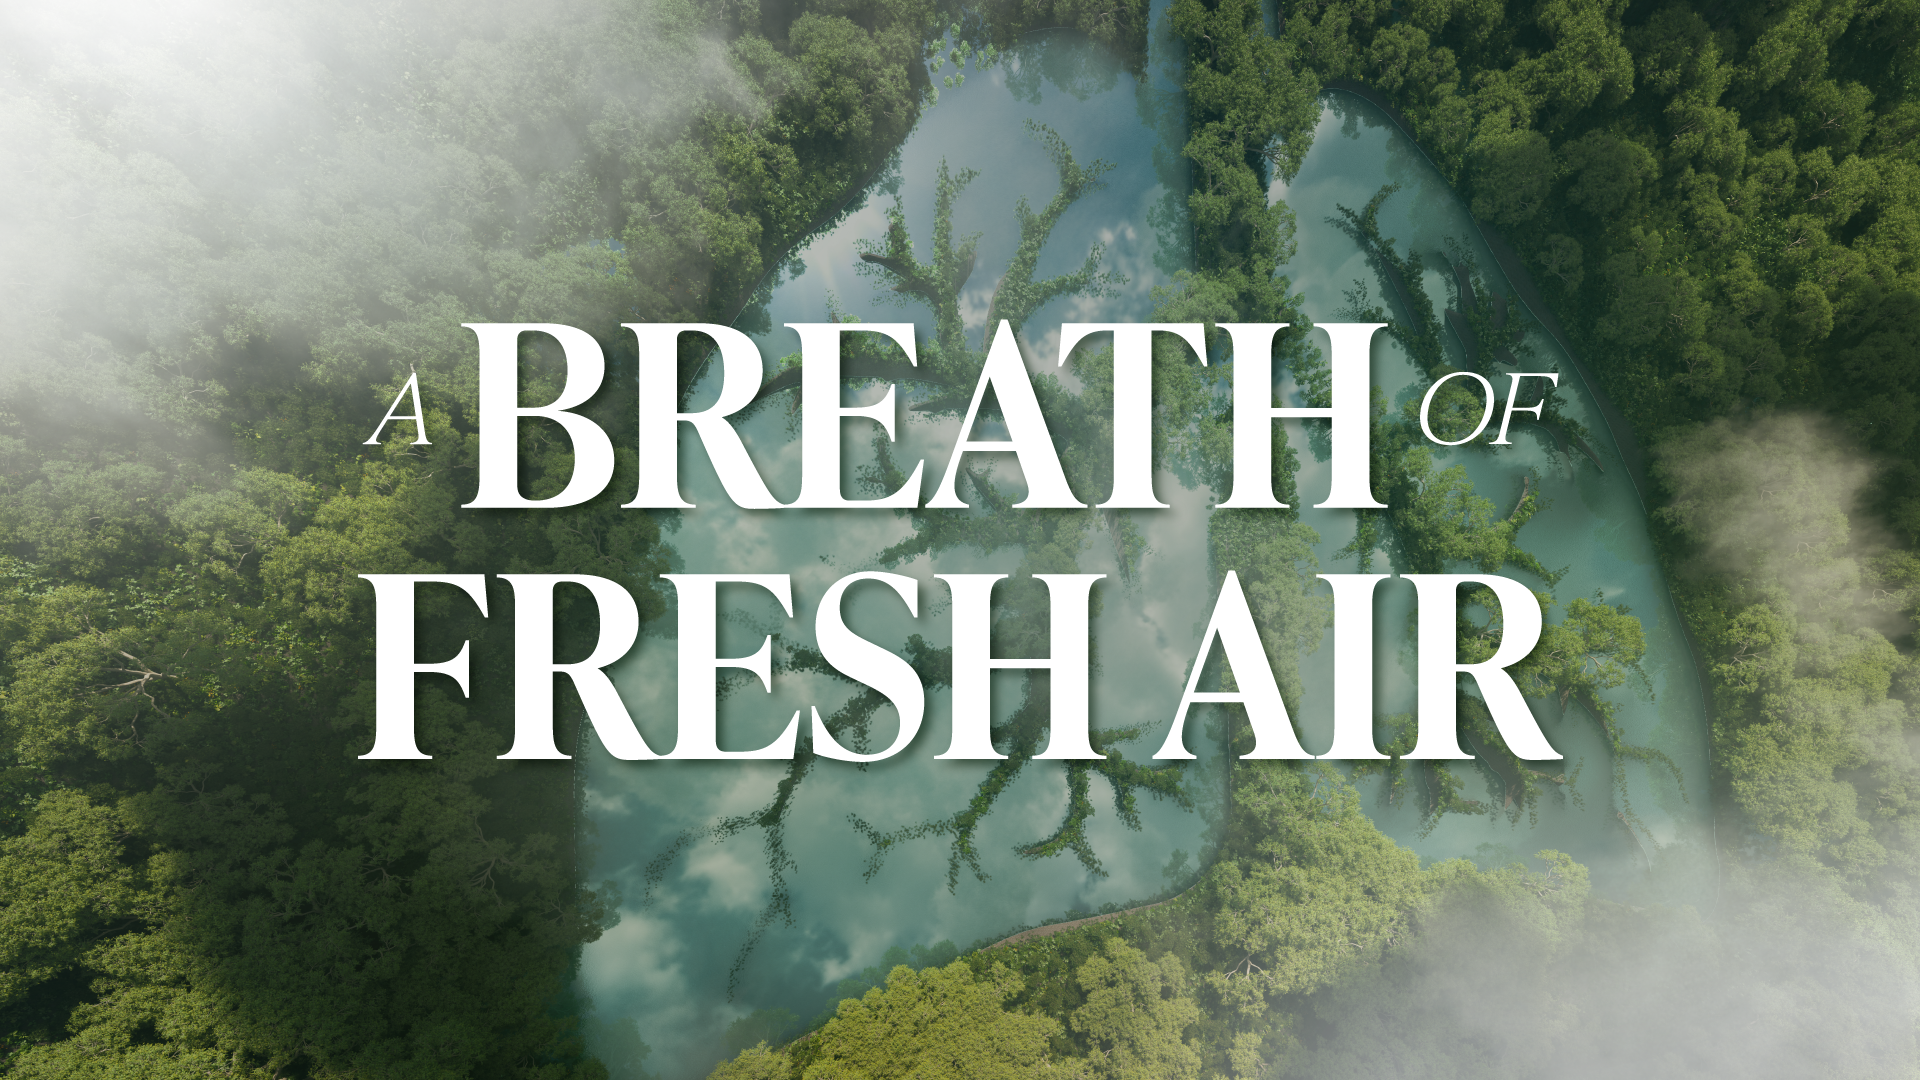 Breathe-of-Fresh-Air-1920x1080